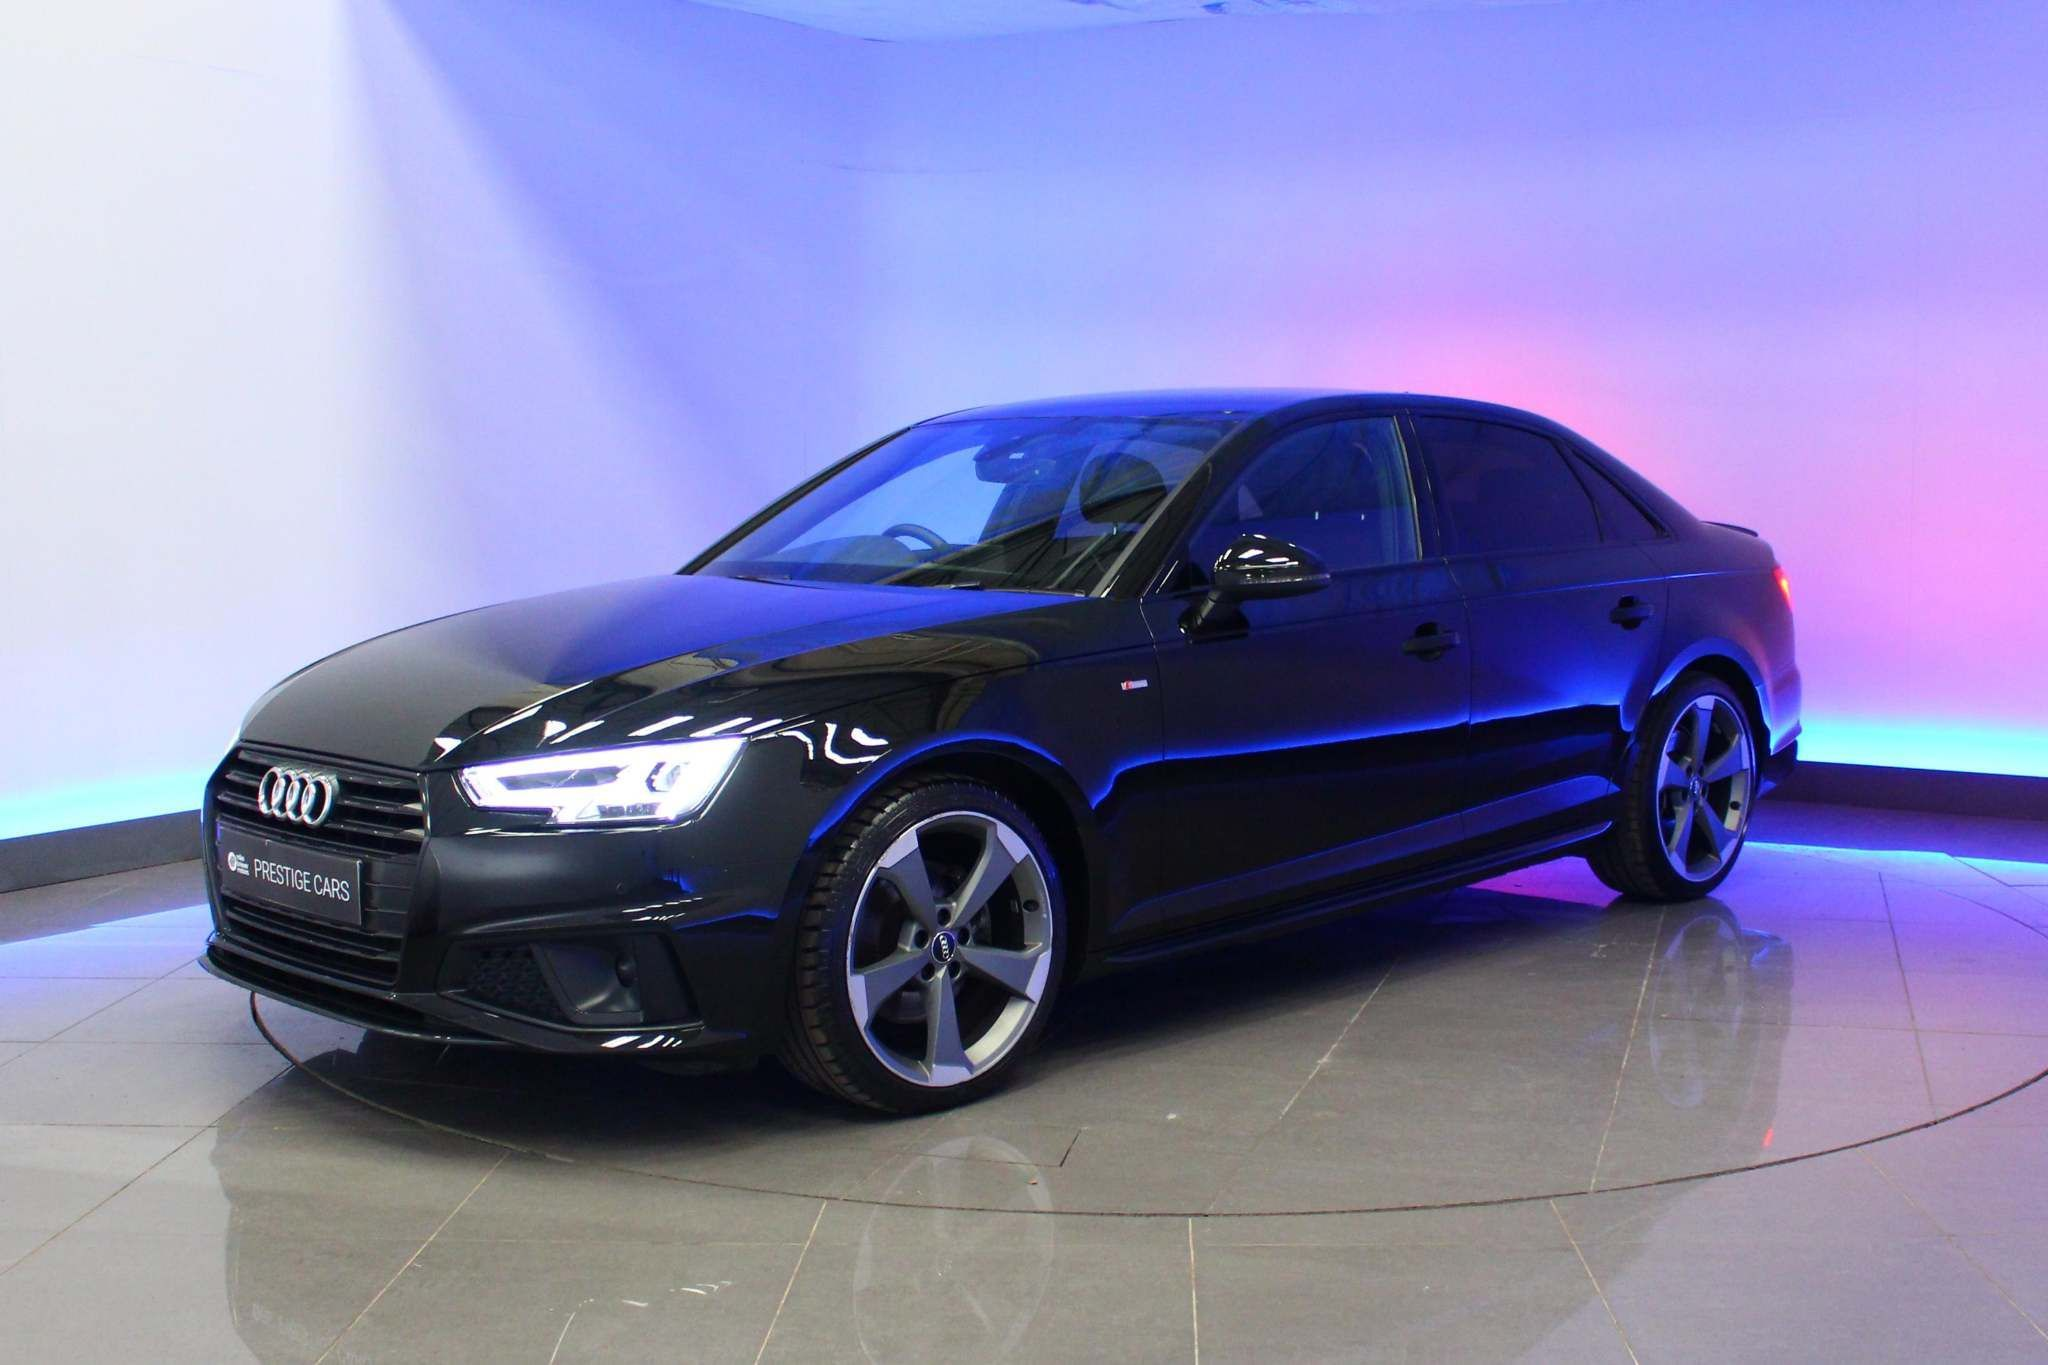 Used Audi A4 Black Edition